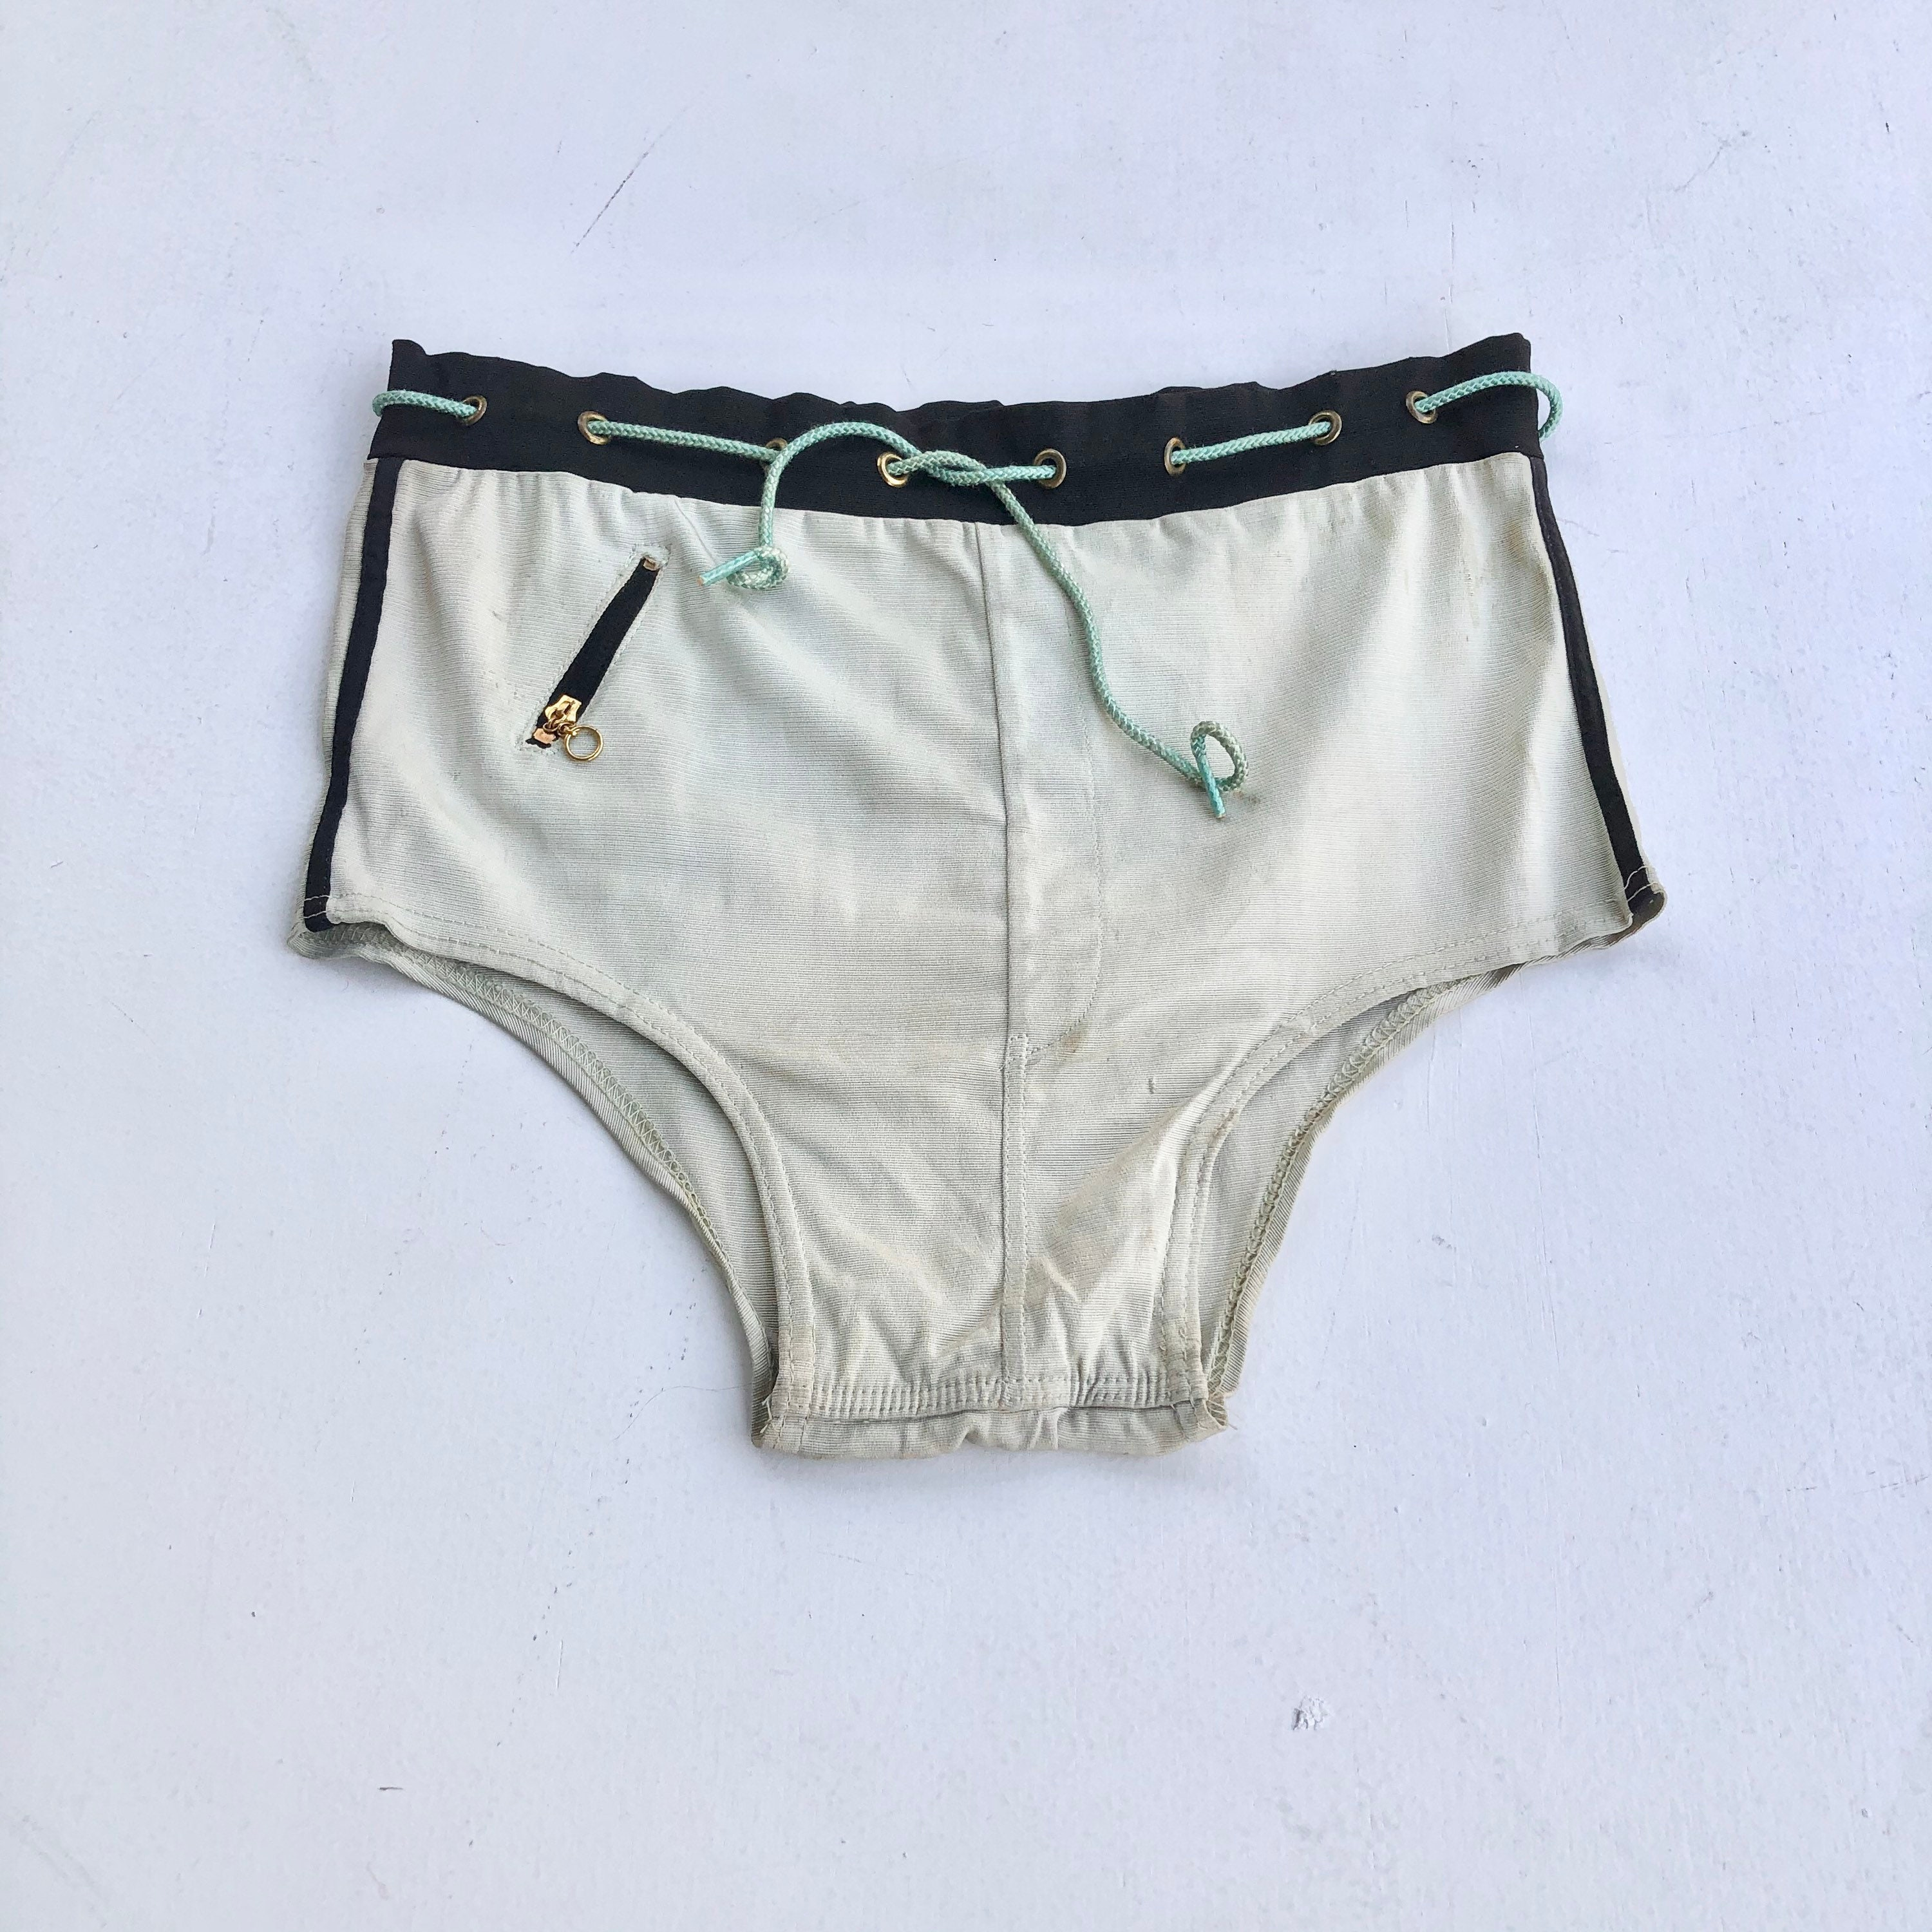 1940s Jewelry Styles and History Amazing 1940s Rayon Knit Sailor Swim Briefs S $30.00 AT vintagedancer.com